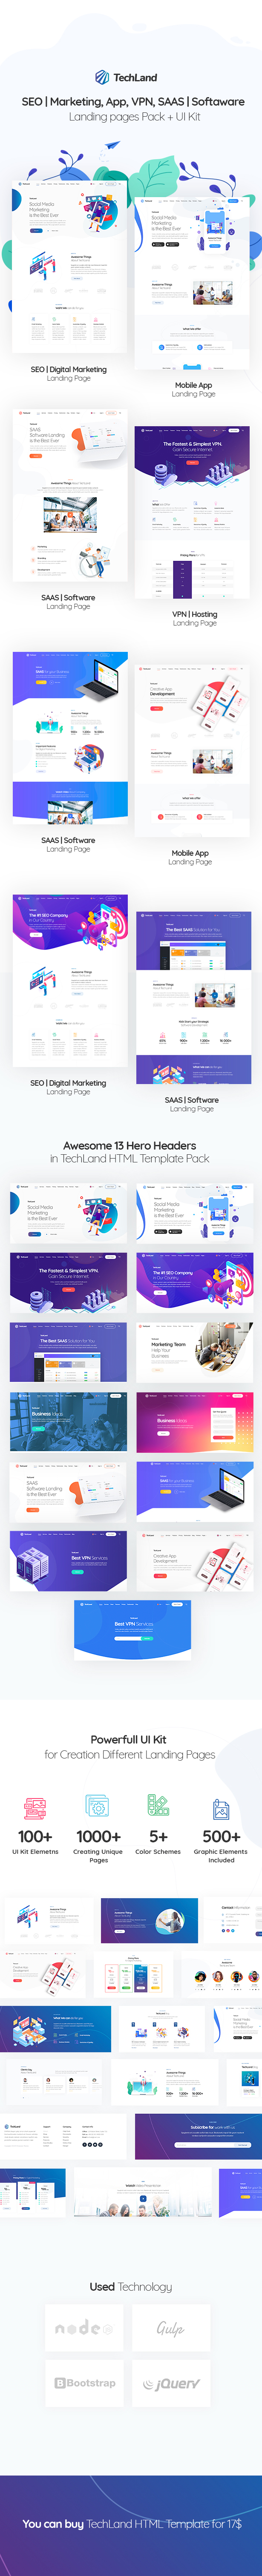 TechLand - SEO|Marketing, SAAS|Software, App, VPN Landing pages + UI Kit - 5